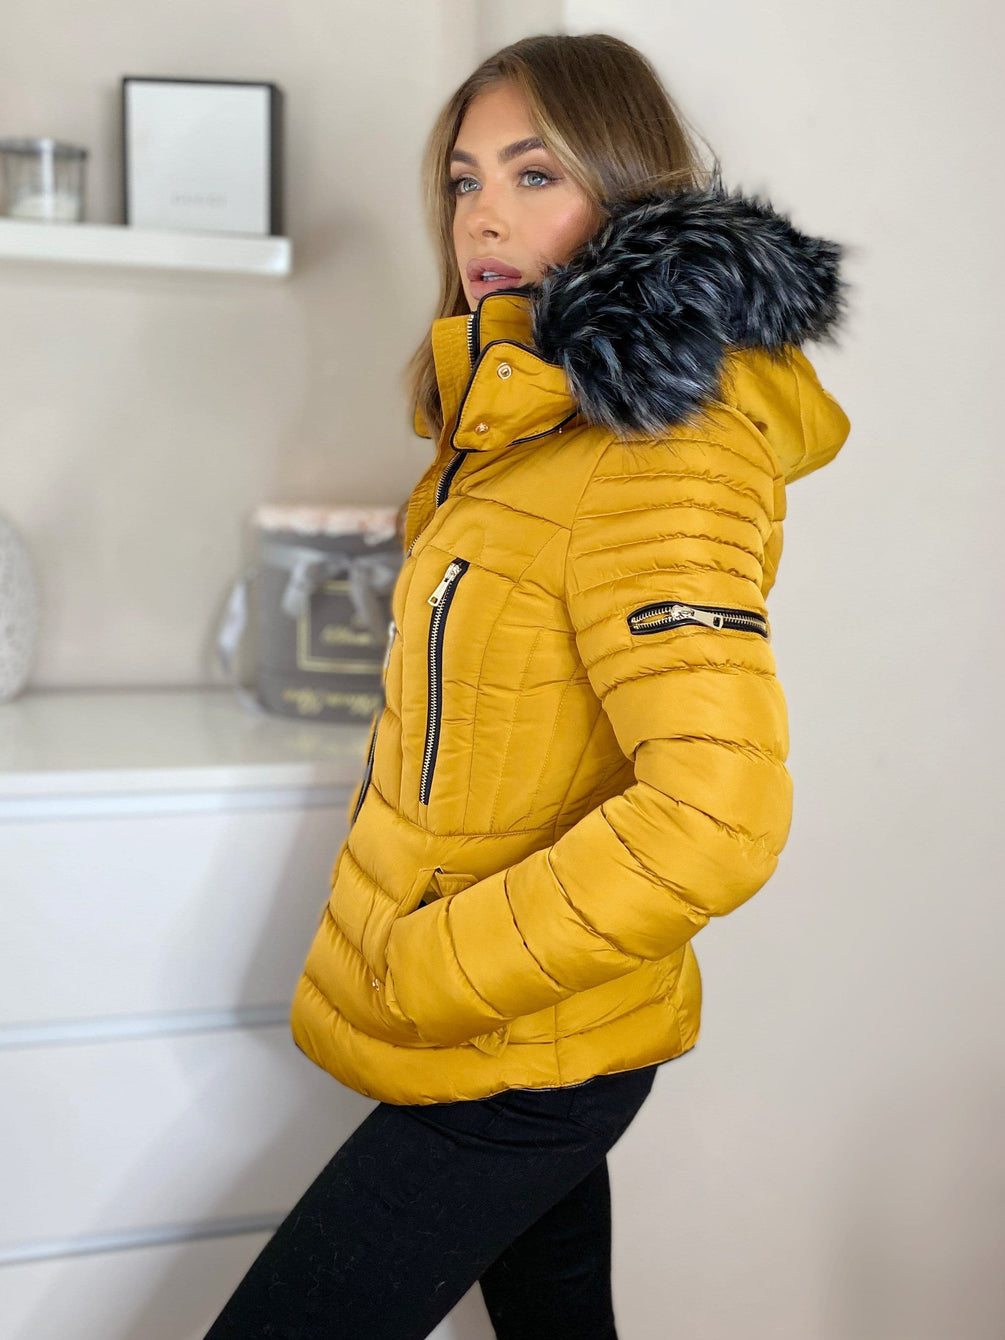 Sarah Zip Up Puffa Jacket With Faux Fur Hood in Mustard Coats Miss Diva